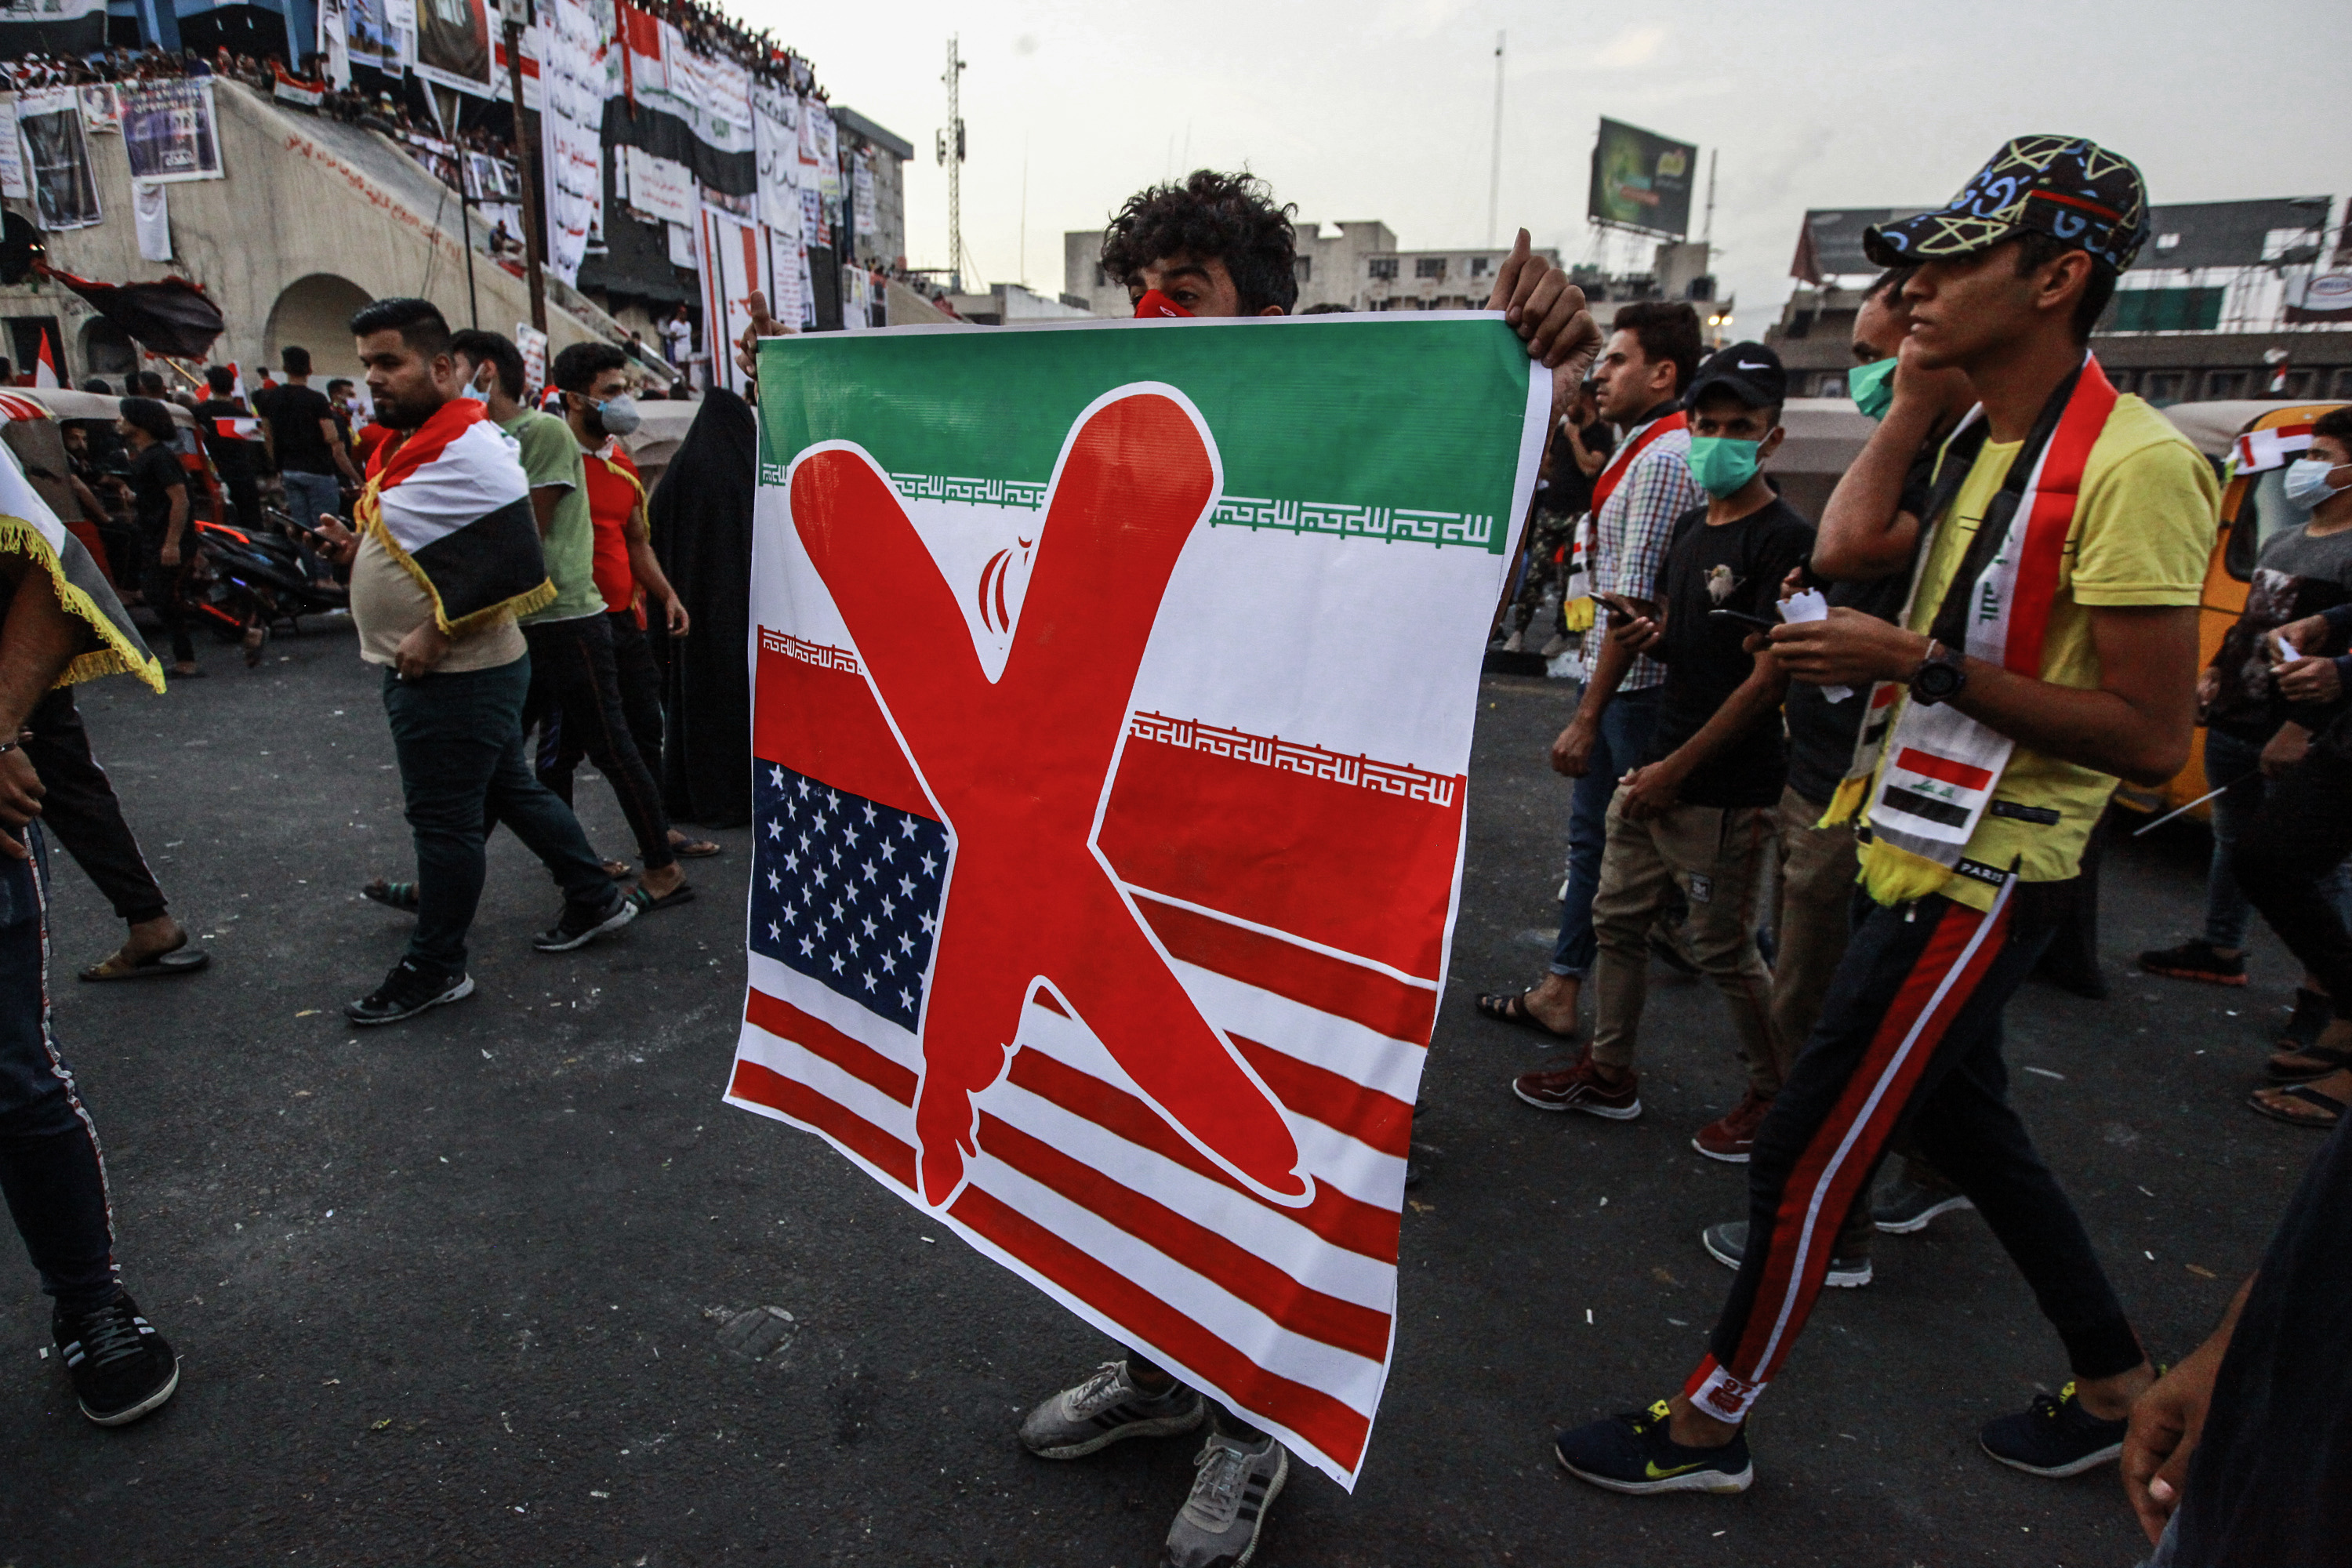 03 November 2019, Iraq, Baghdad: A protester holds a banner against the US and Iran during an anti-government protest near Tahrir Square. Photo by: Ameer Al Mohammedaw/picture-alliance/dpa/AP Images